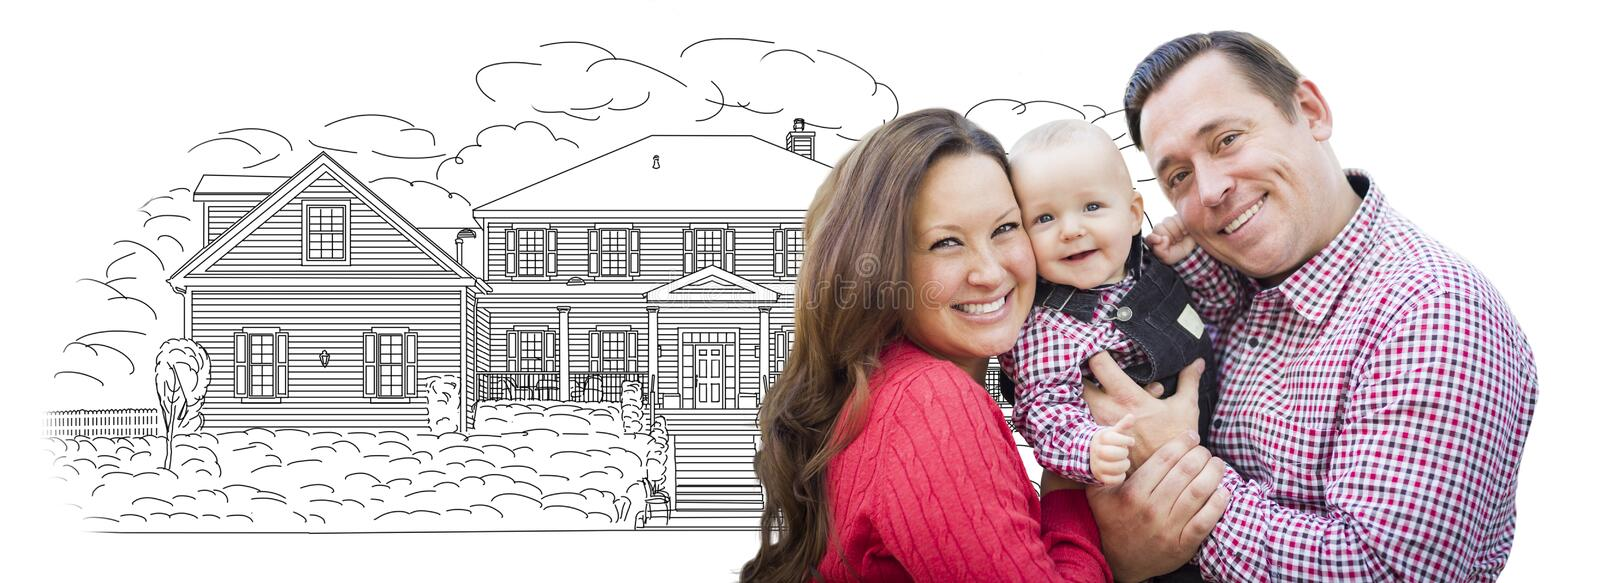 Young Family With Baby Over House Drawing on White. Happy Young Family With Baby Over House Drawing Isolated on a White Background royalty free stock photography